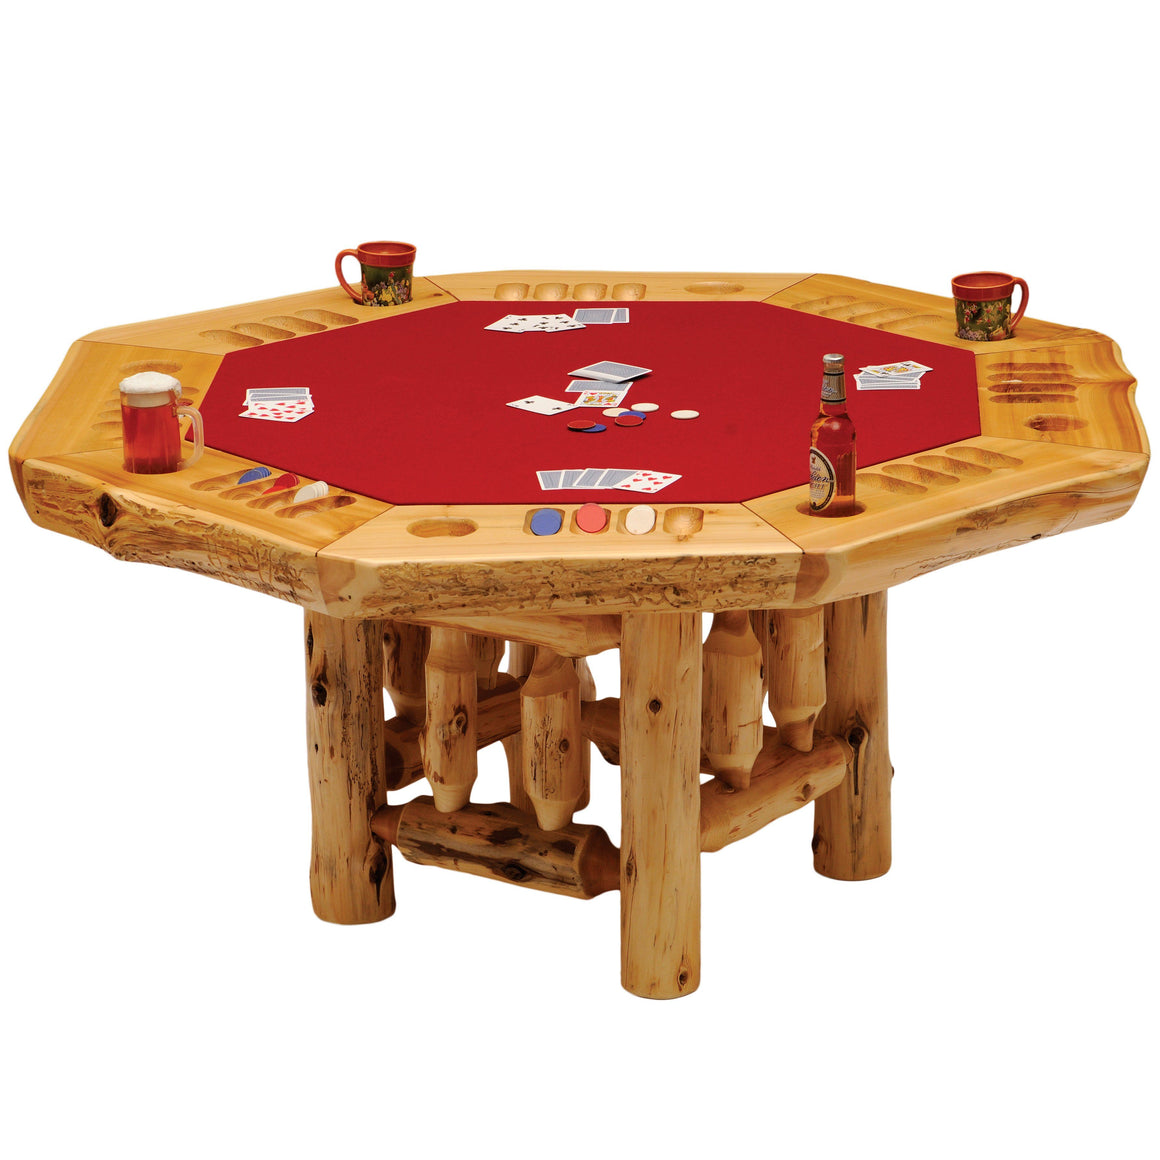 6-sided Cedar Log Poker Table - Armor Finish Top - Optional Dining Table Cover in 3 finishes-Rustic Deco Incorporated